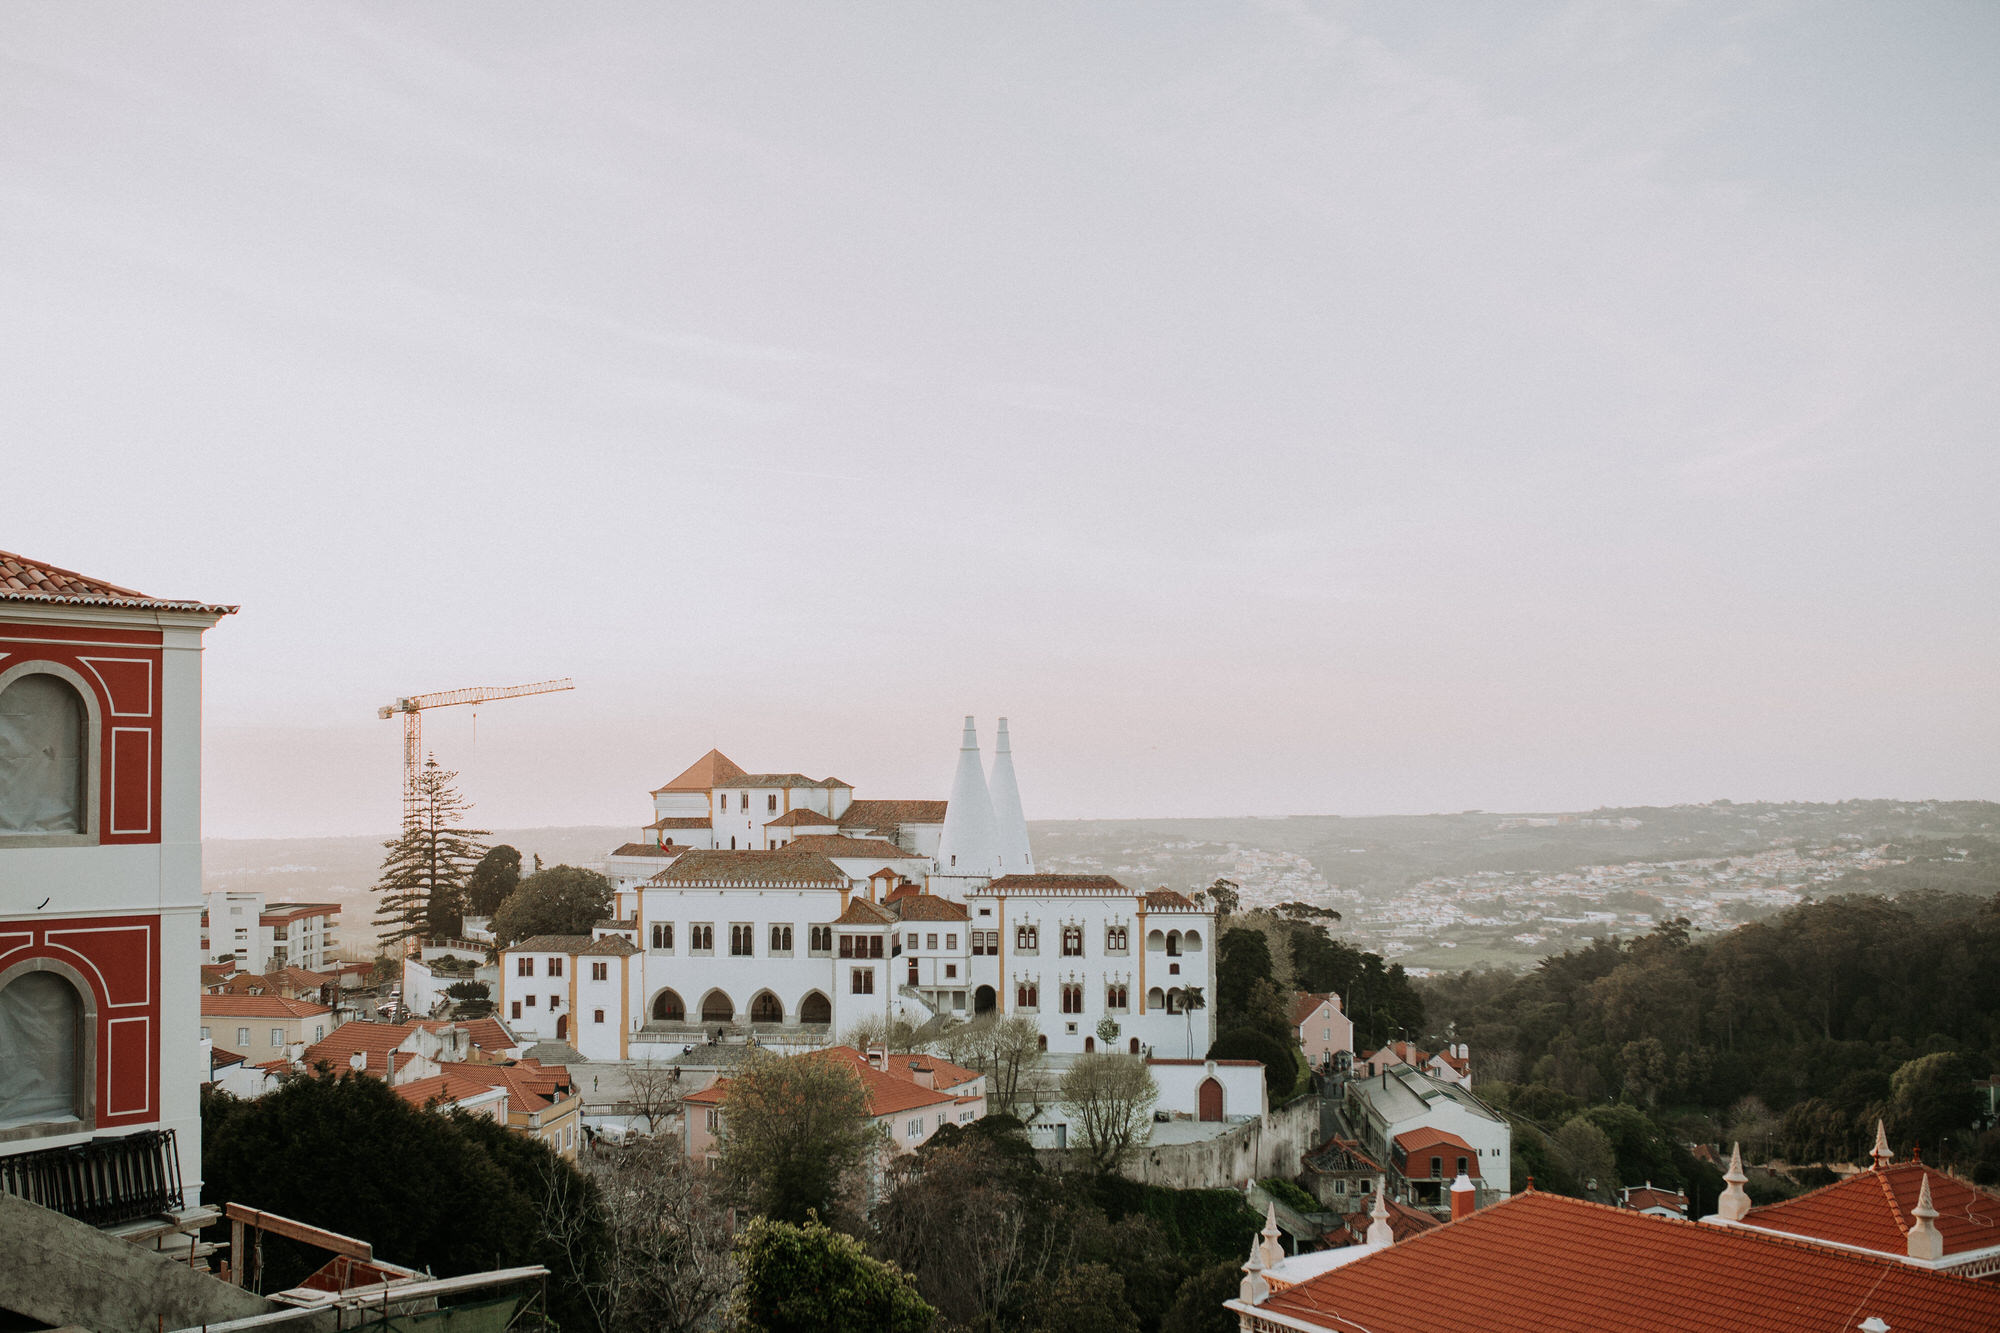 43-sessao-noivado-engagement-love-session-Sintra-lisboa-town-wedding-photography-photographer-natural-best-venue-planner-destination-filipe-santiago-fotografia-lifestyle-documentary